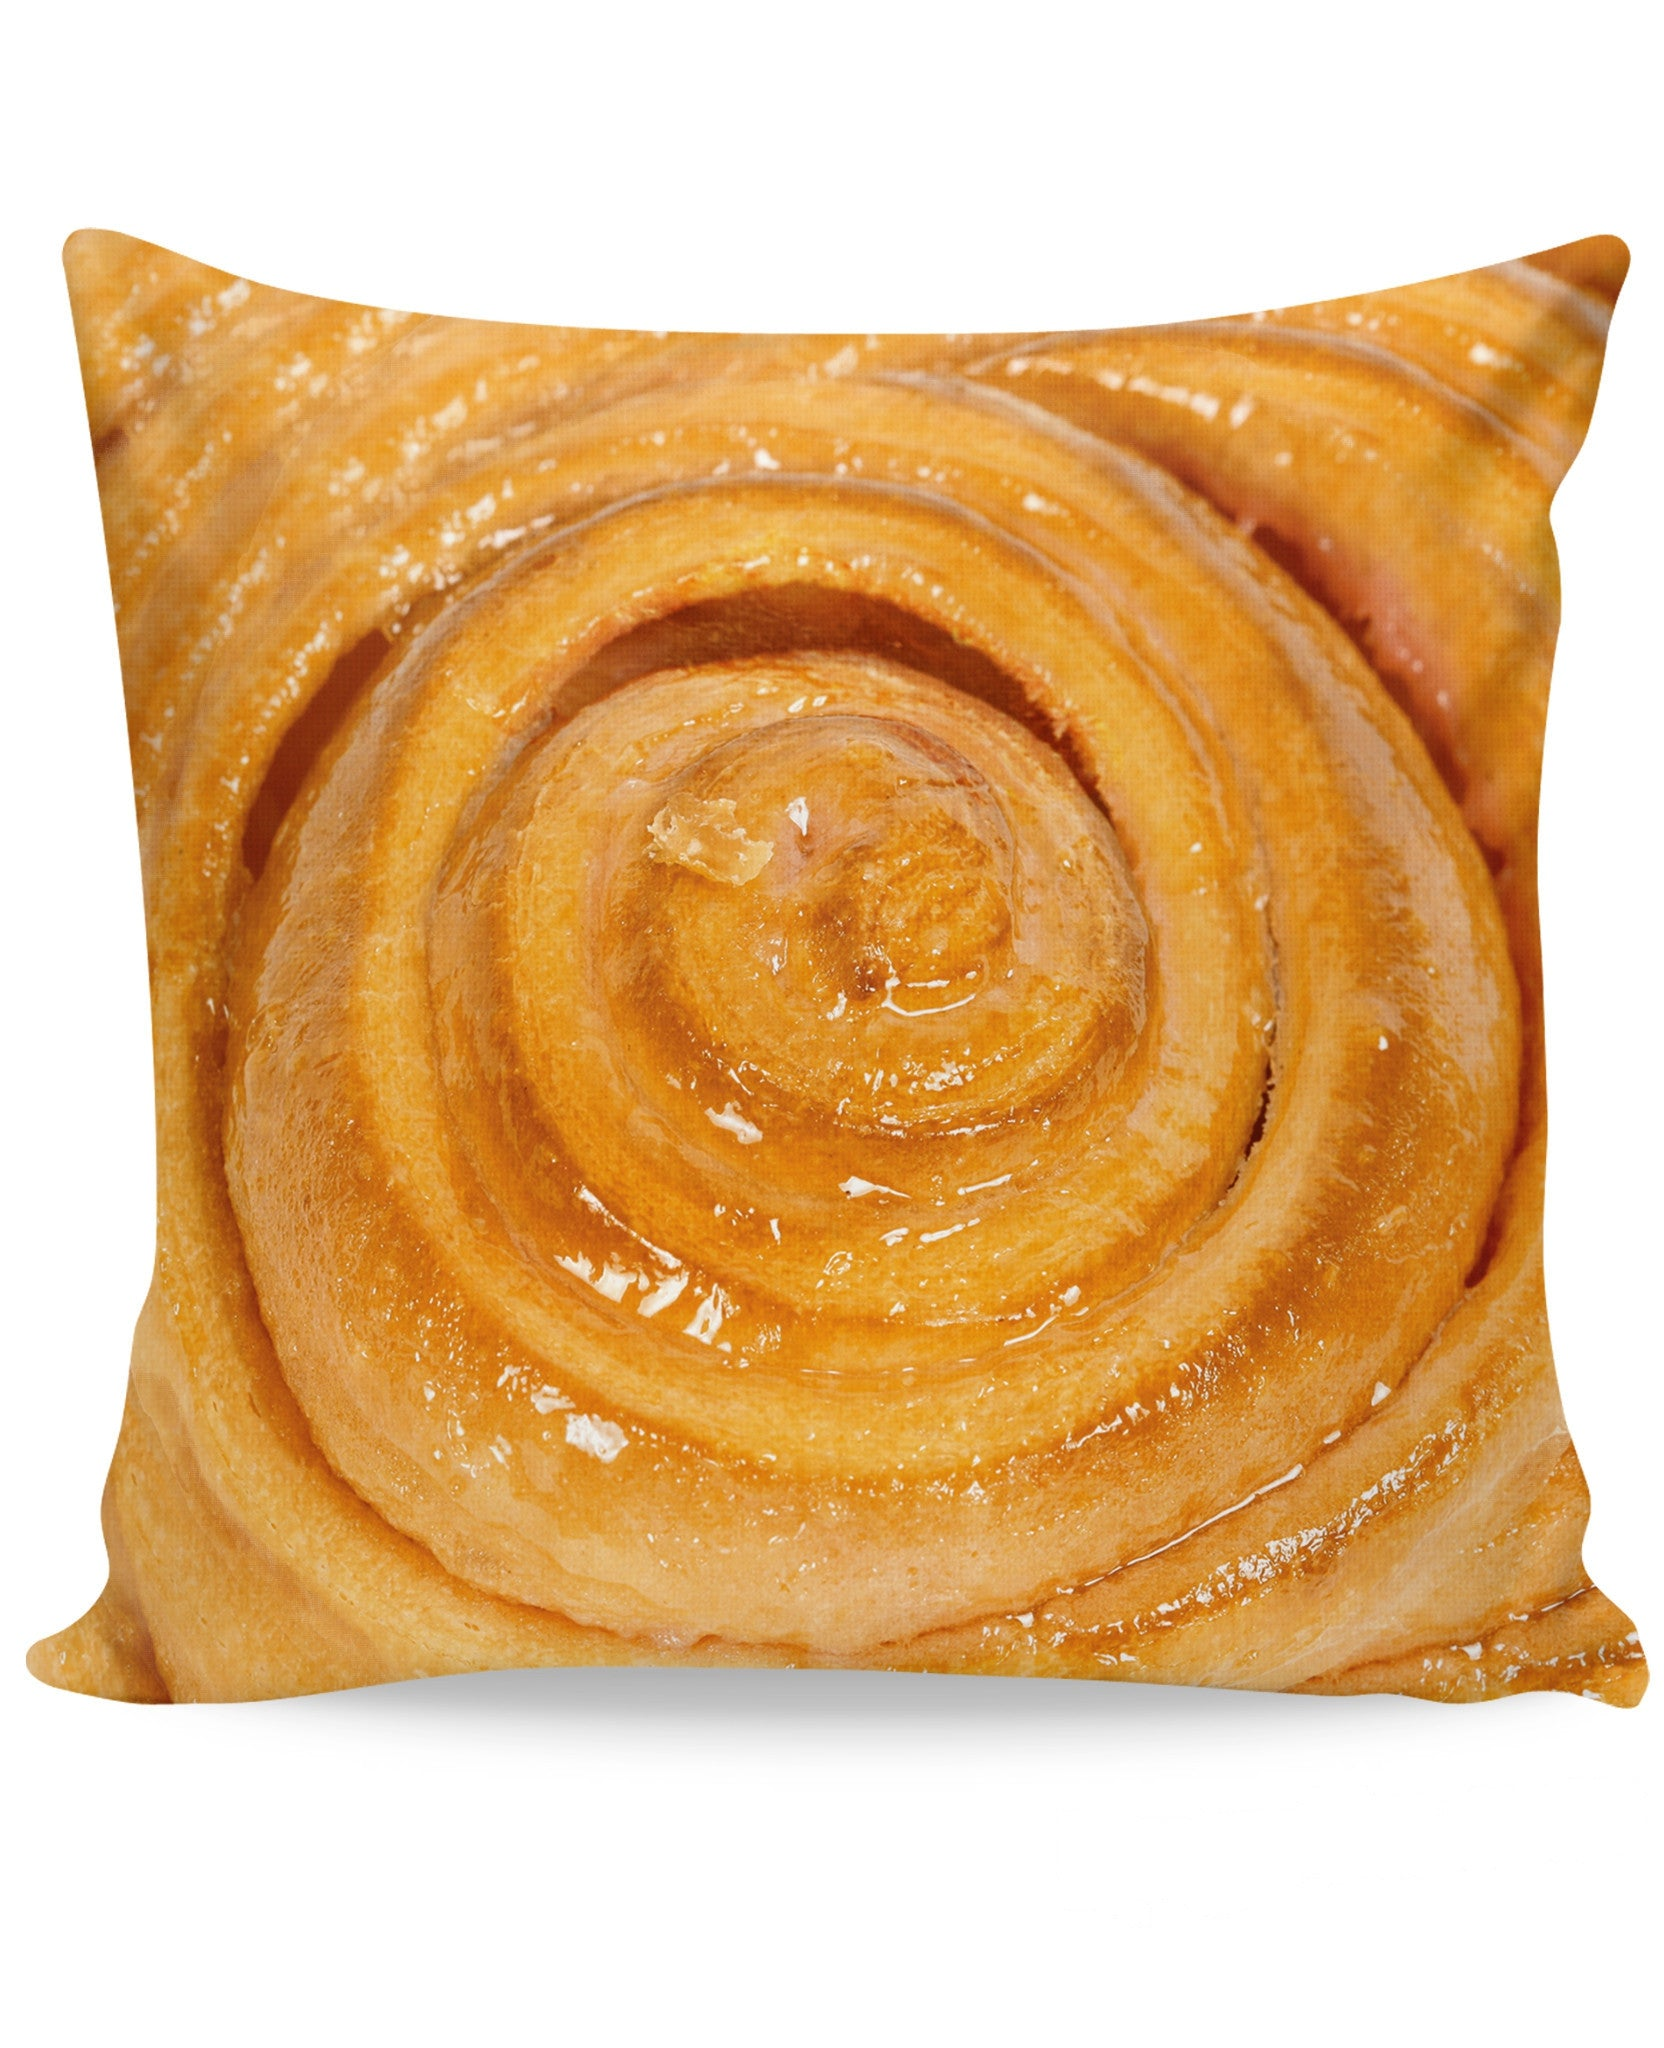 Cinnabon Cinnamon Roll Couch Pillow